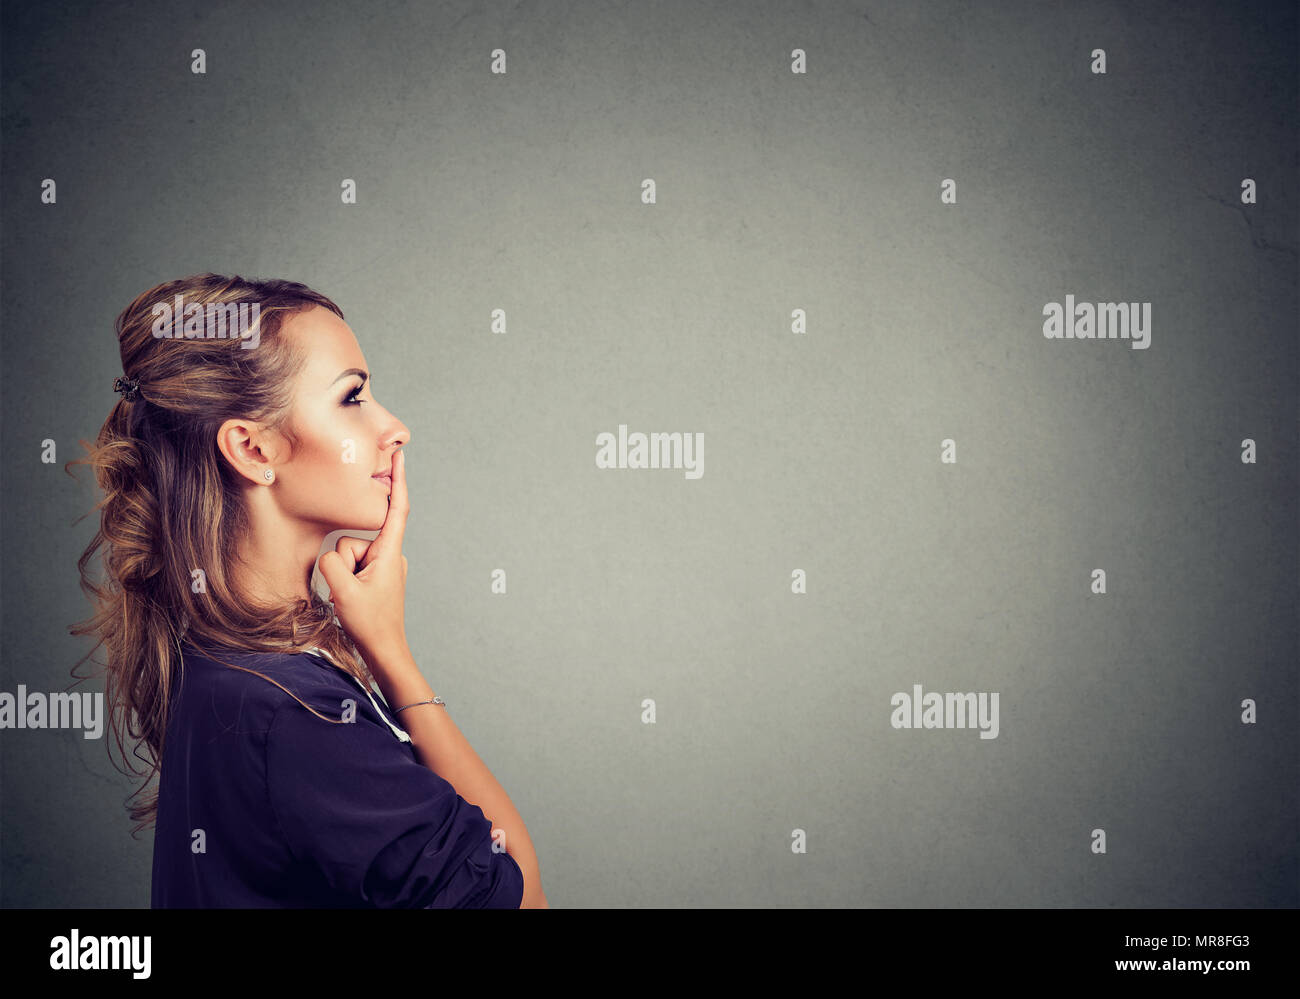 Side view of a pretty brunette woman in contemplation looking away thinking of idea on gray background. - Stock Image